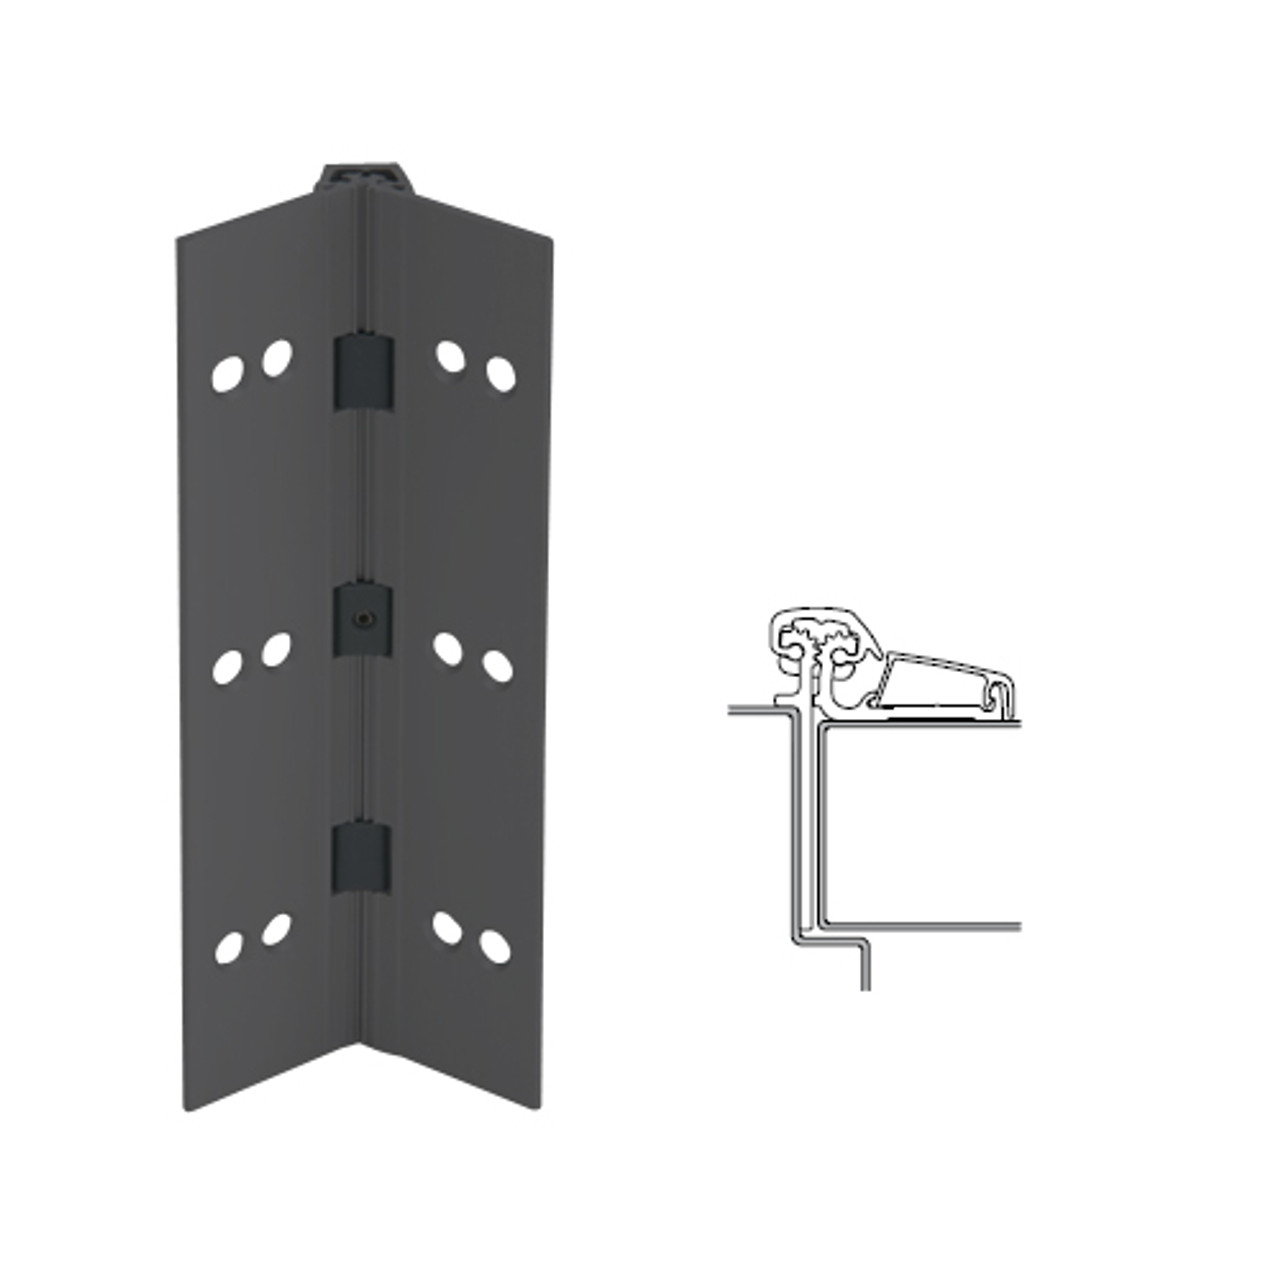 054XY-315AN-85 IVES Adjustable Half Surface Continuous Geared Hinges in Anodized Black